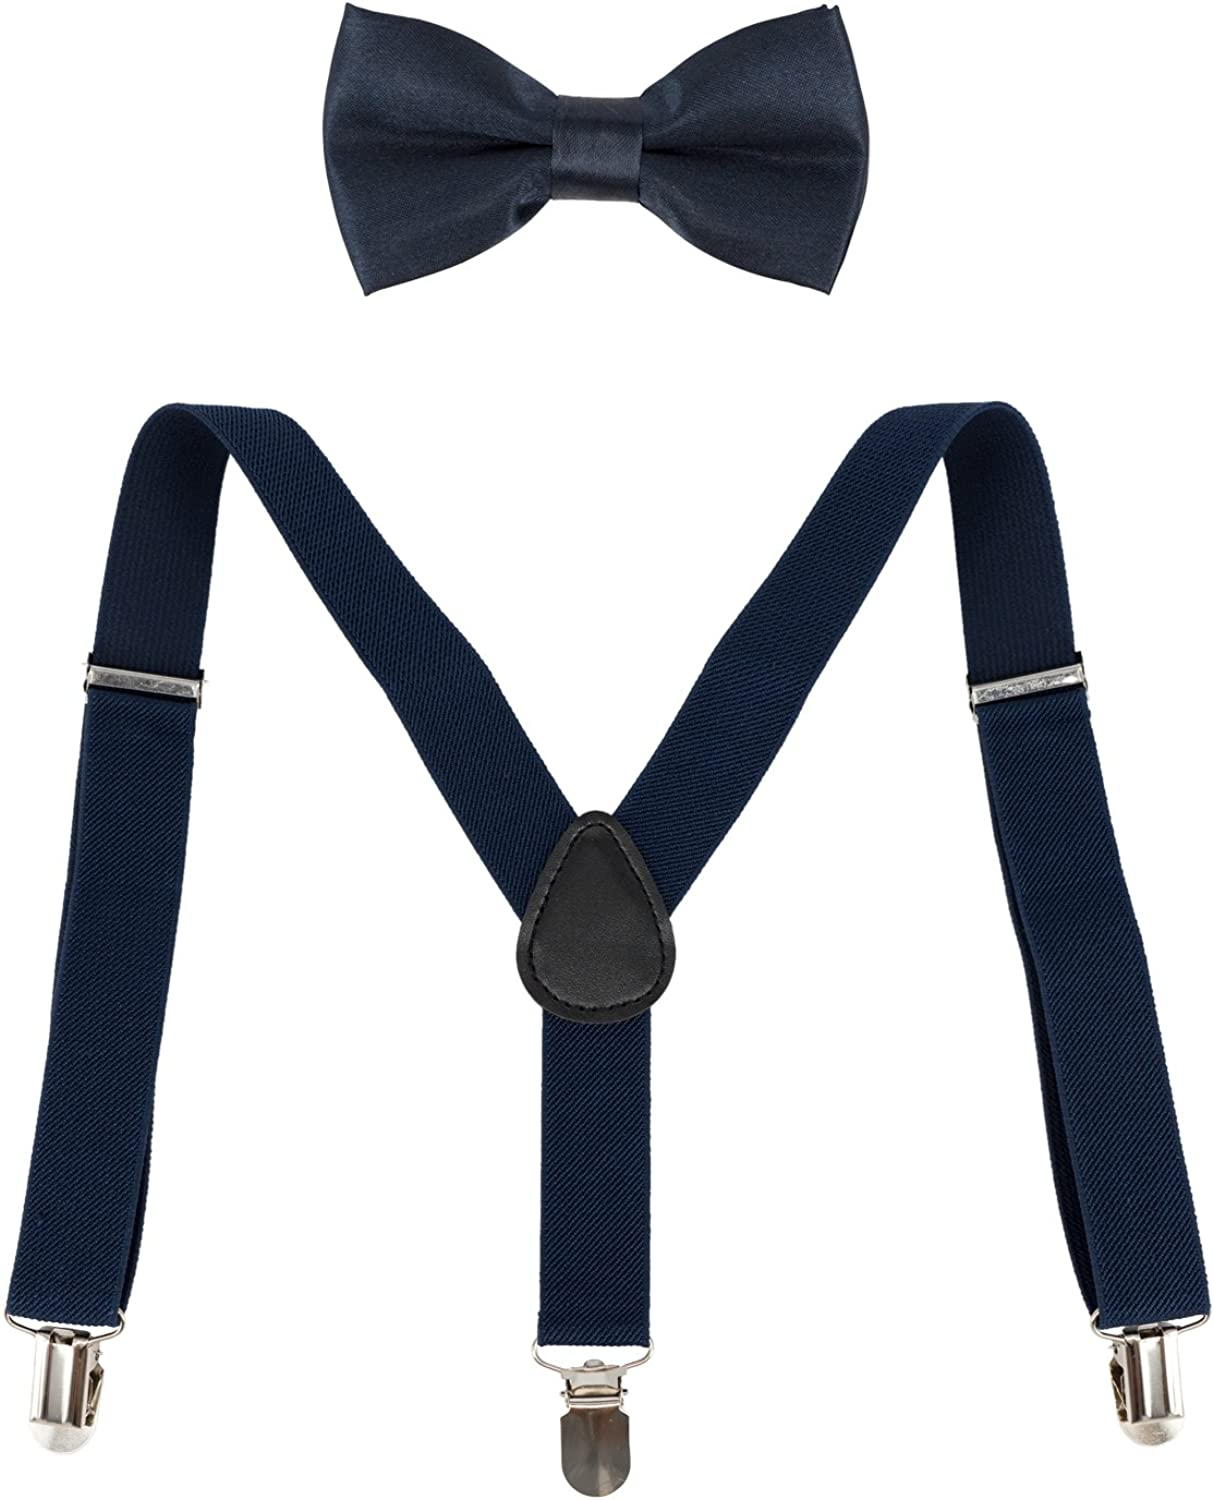 Ateid Kids Braces Bow Tie Clip-on Suspenders Set Y-shape